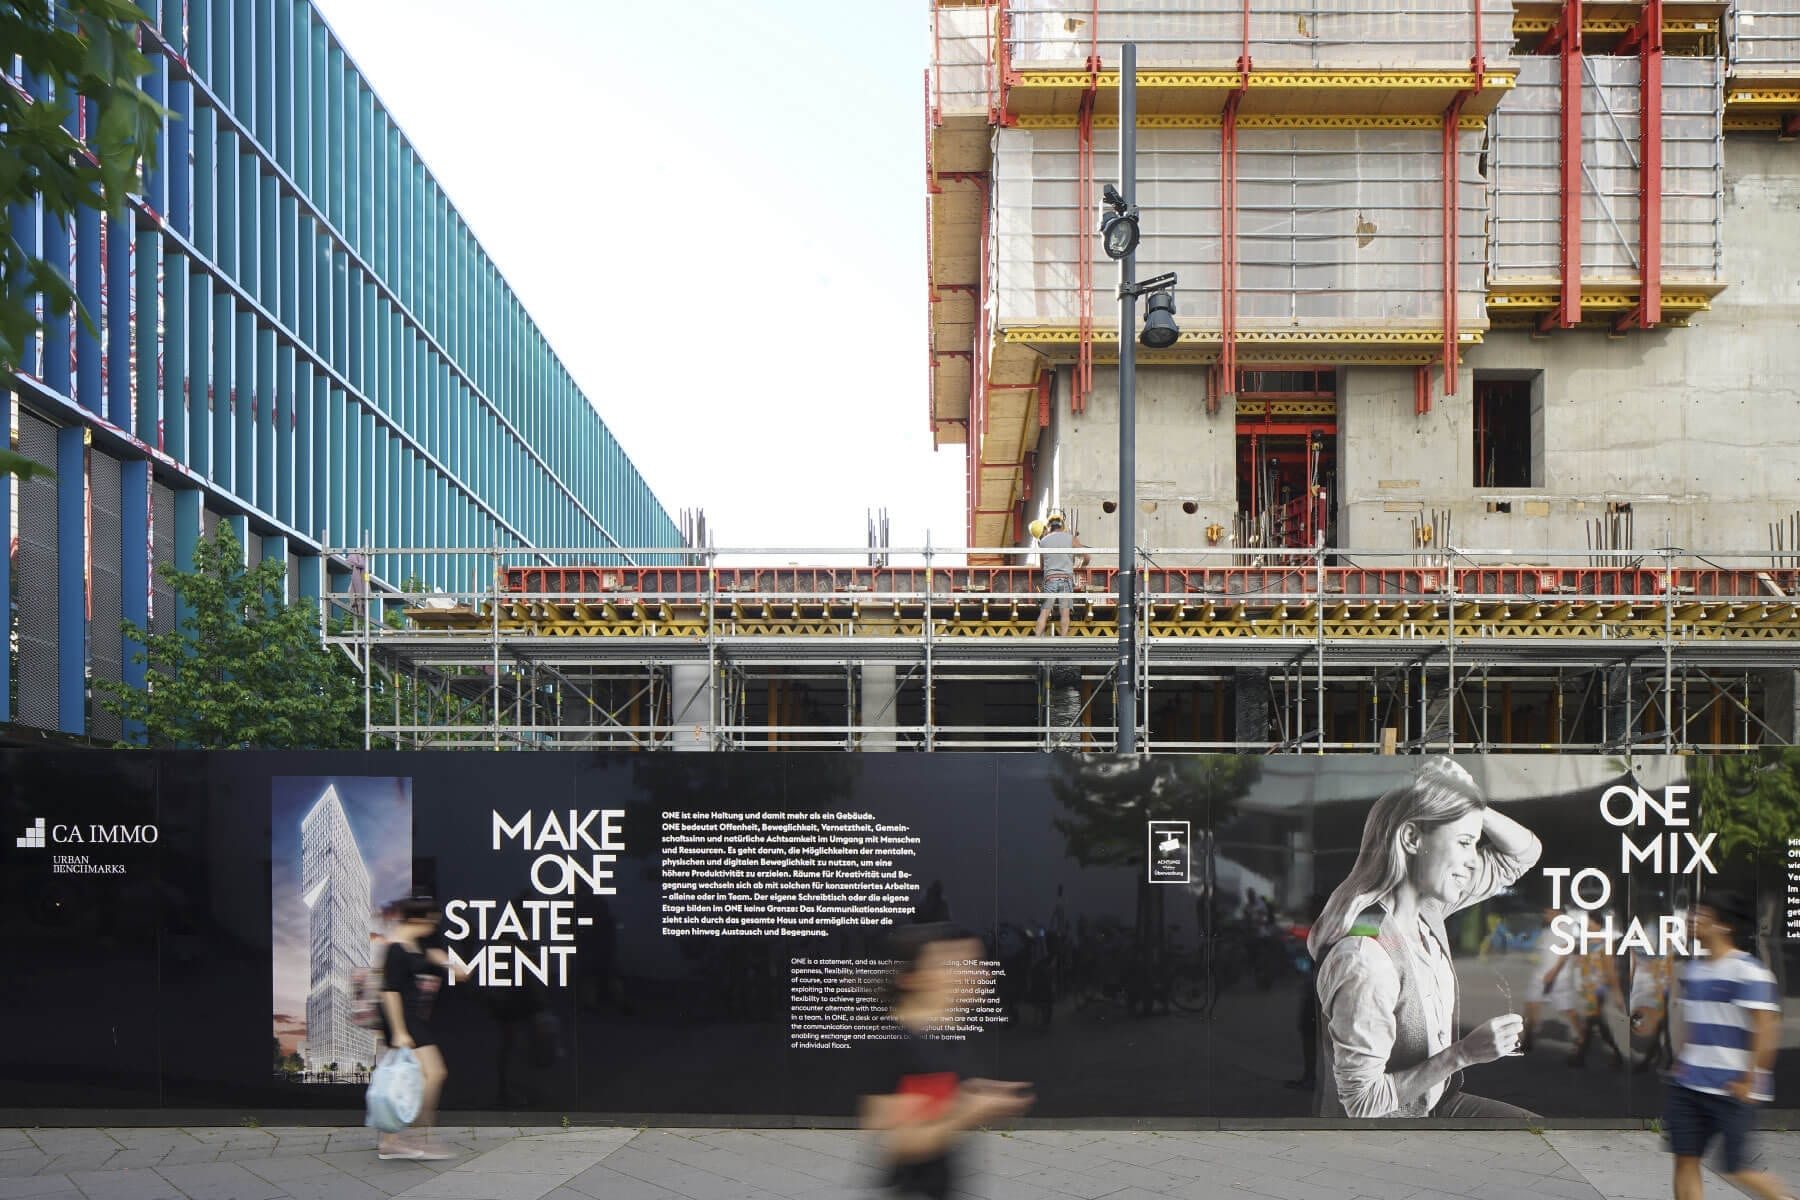 Branding Campaign ONE by CA Immo Construction Site Hoarding 2D